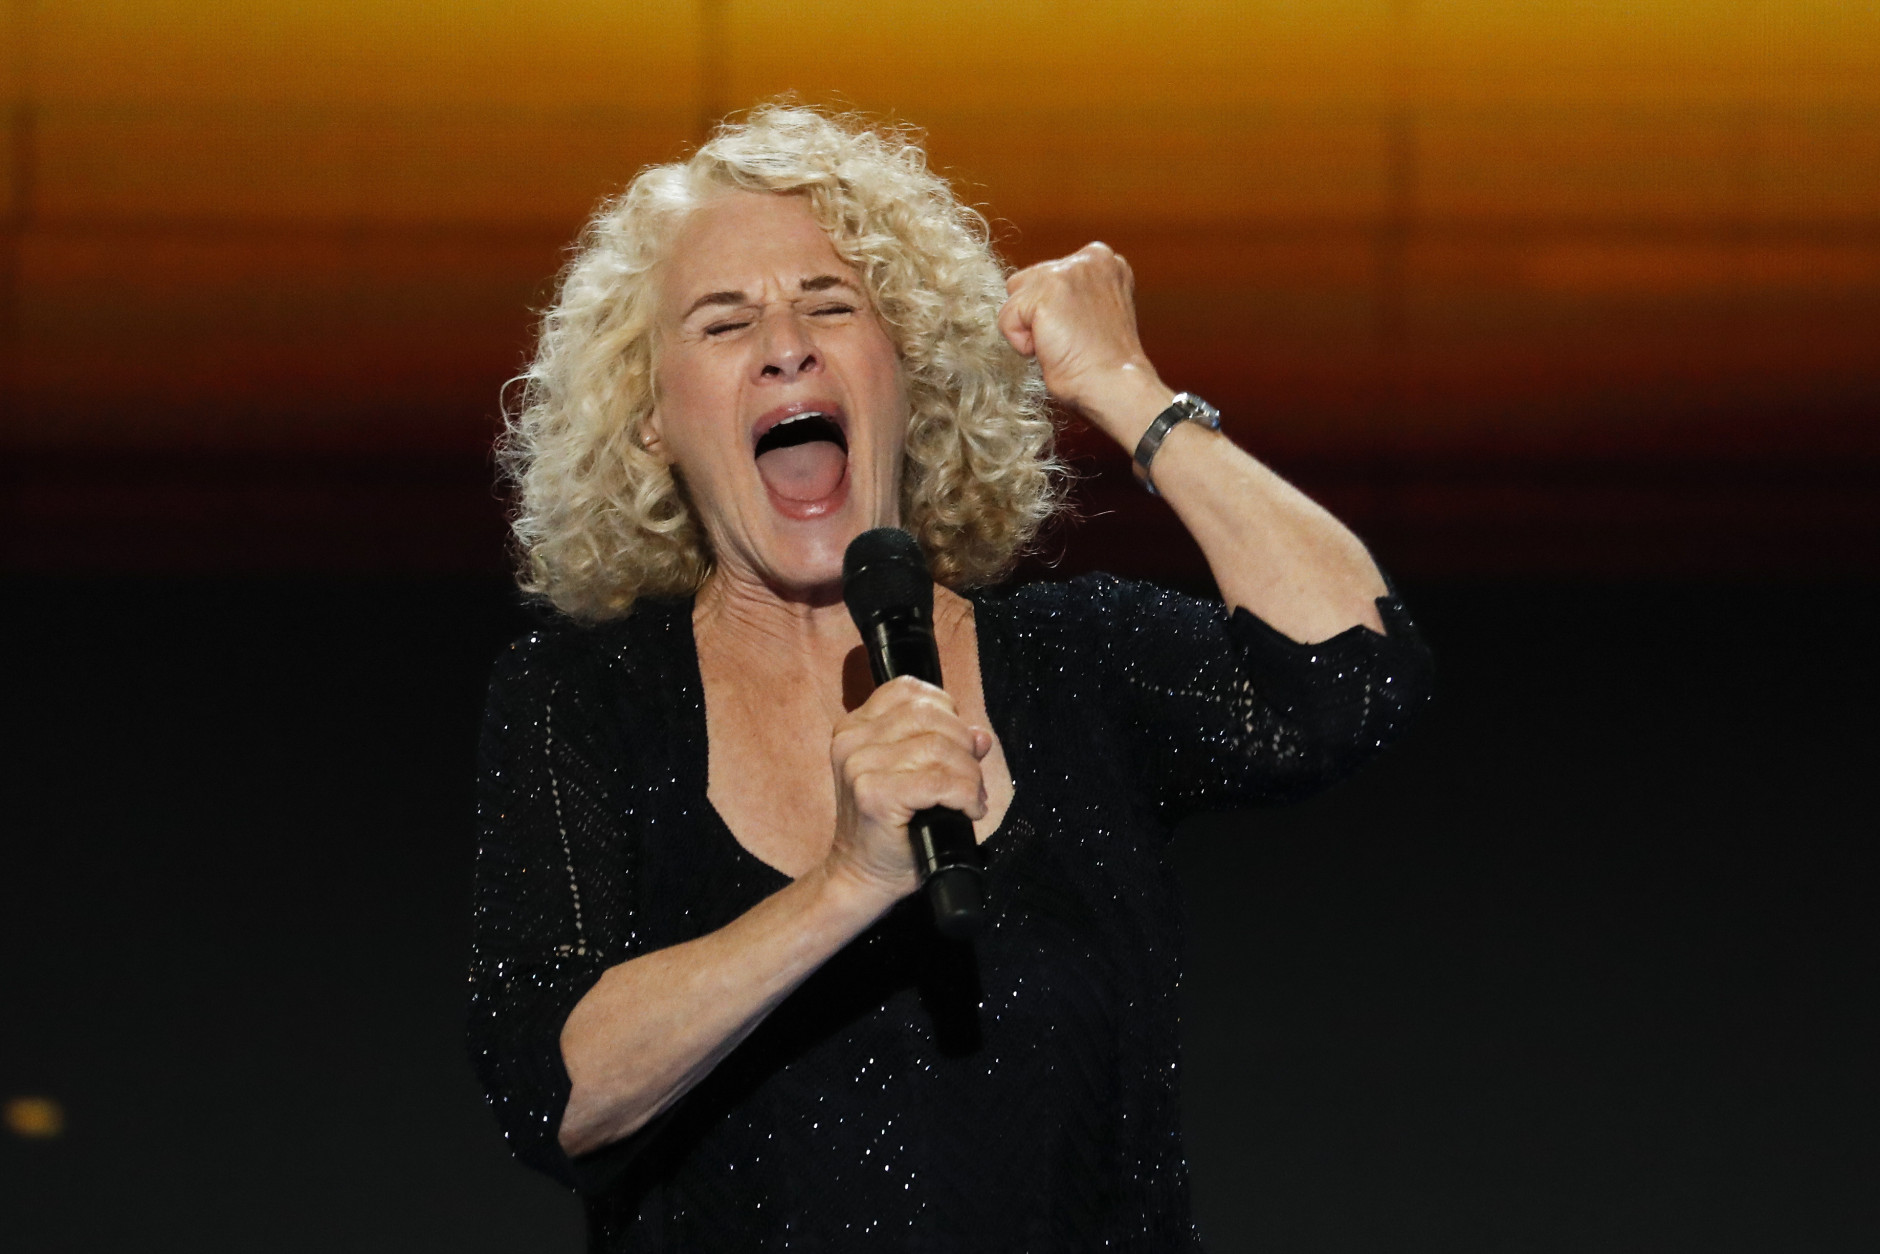 Singer Carole King performs during the final day of the Democratic National Convention in Philadelphia , Thursday, July 28, 2016. (AP Photo/J. Scott Applewhite)